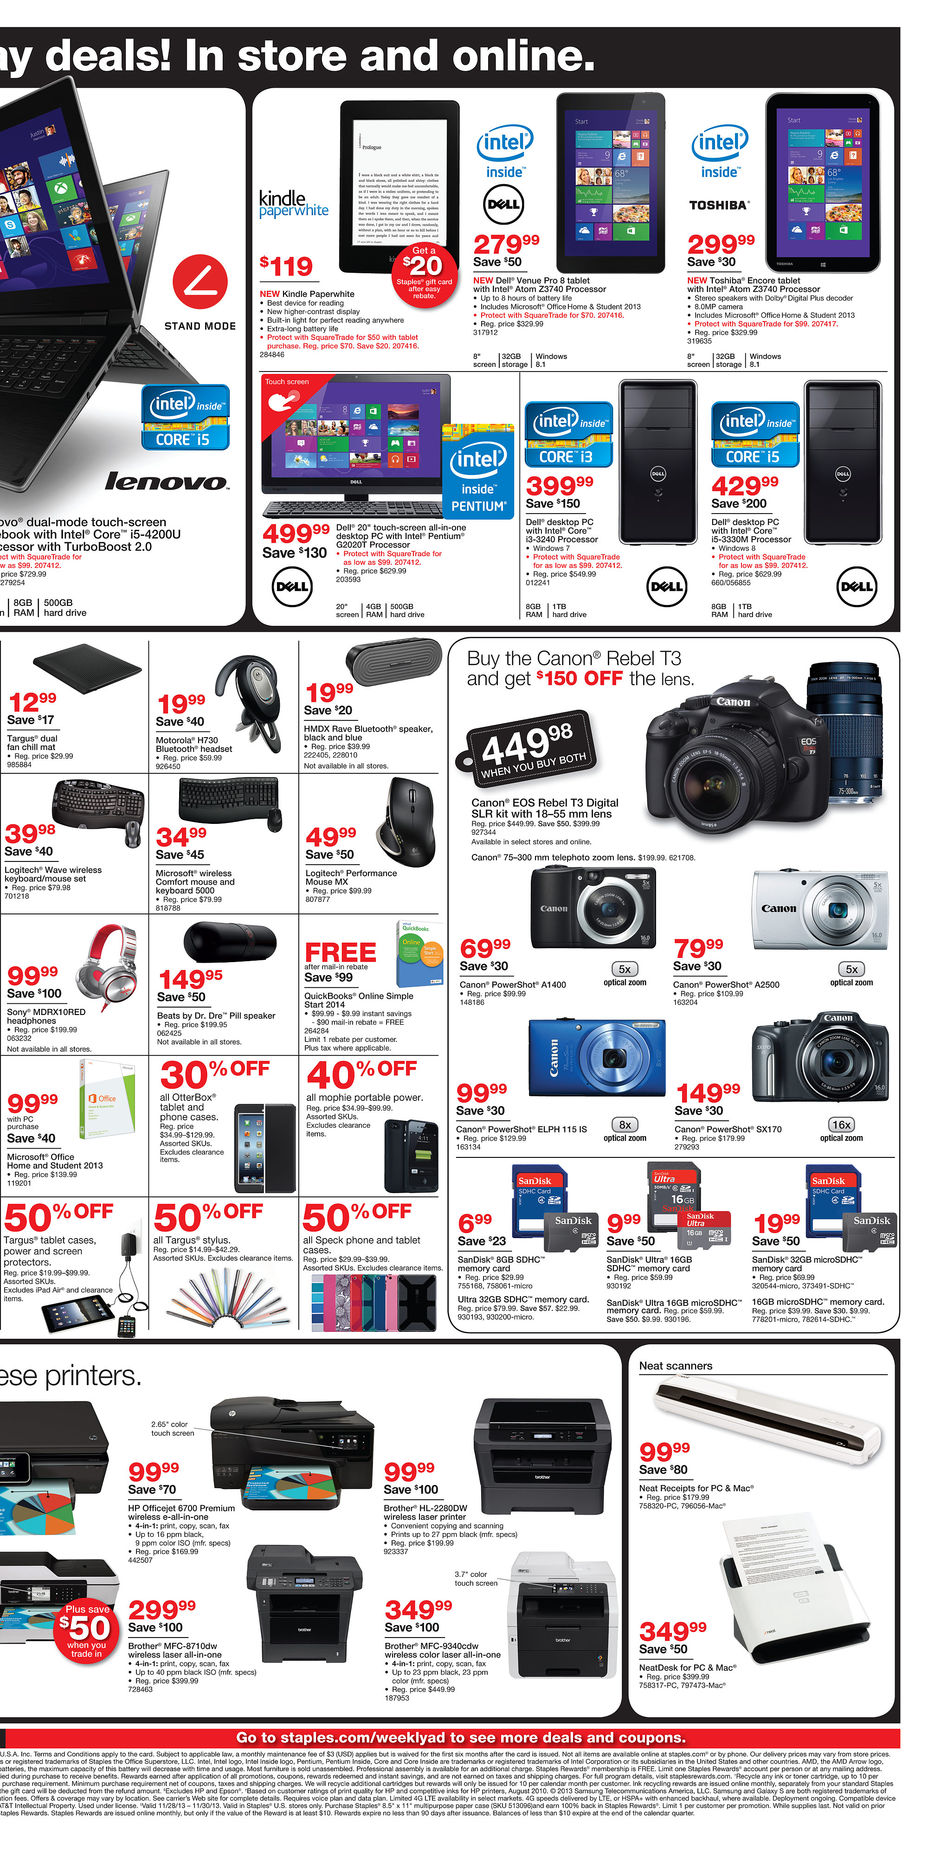 staples-black-friday-ad-page-3